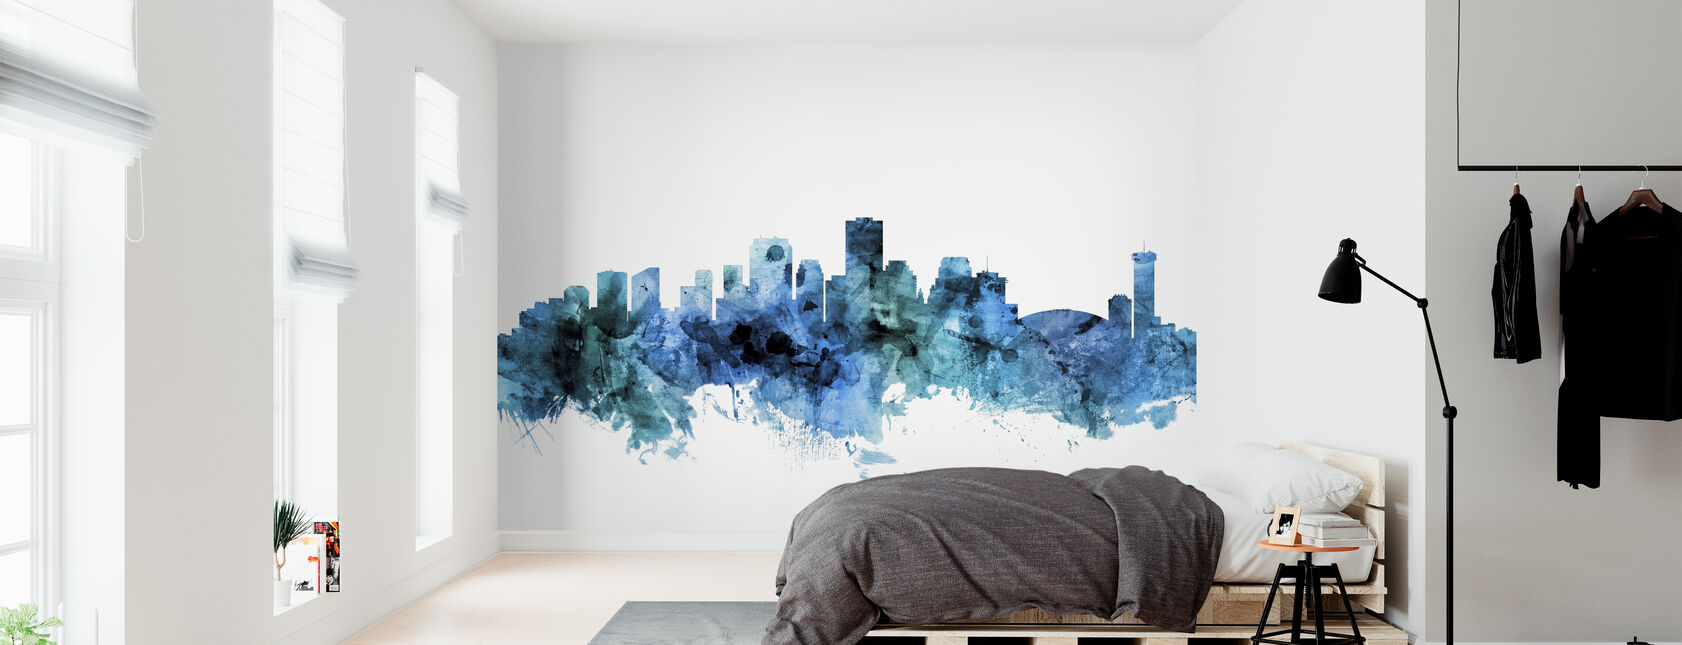 New Orleans Louisiana Skyline - Wallpaper - Bedroom